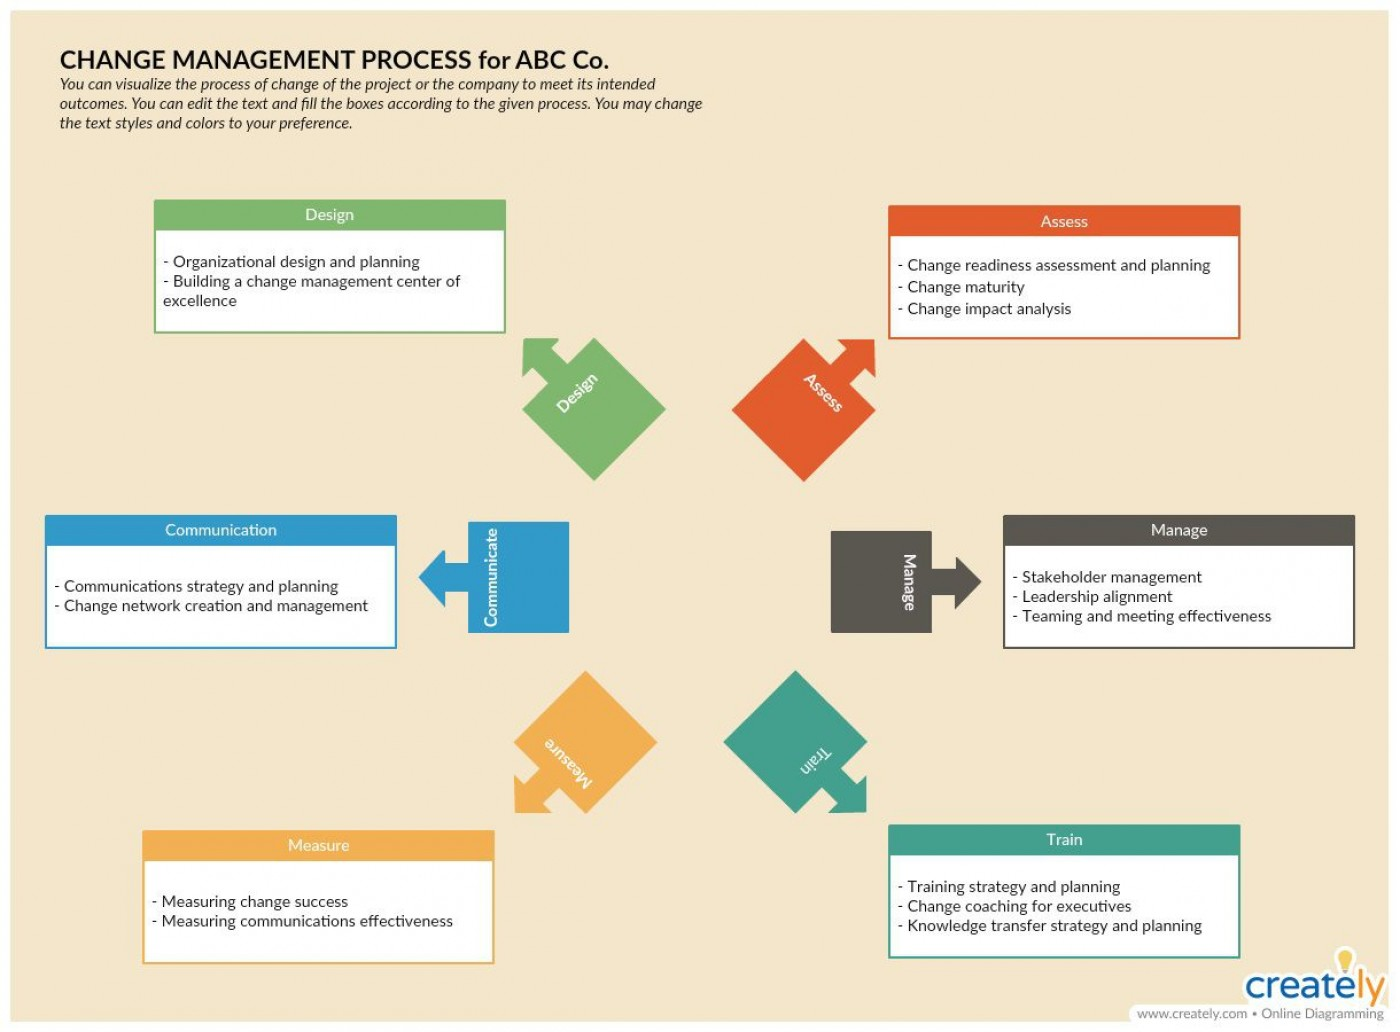 003 Fearsome Change Management Plan Template Photo 1400